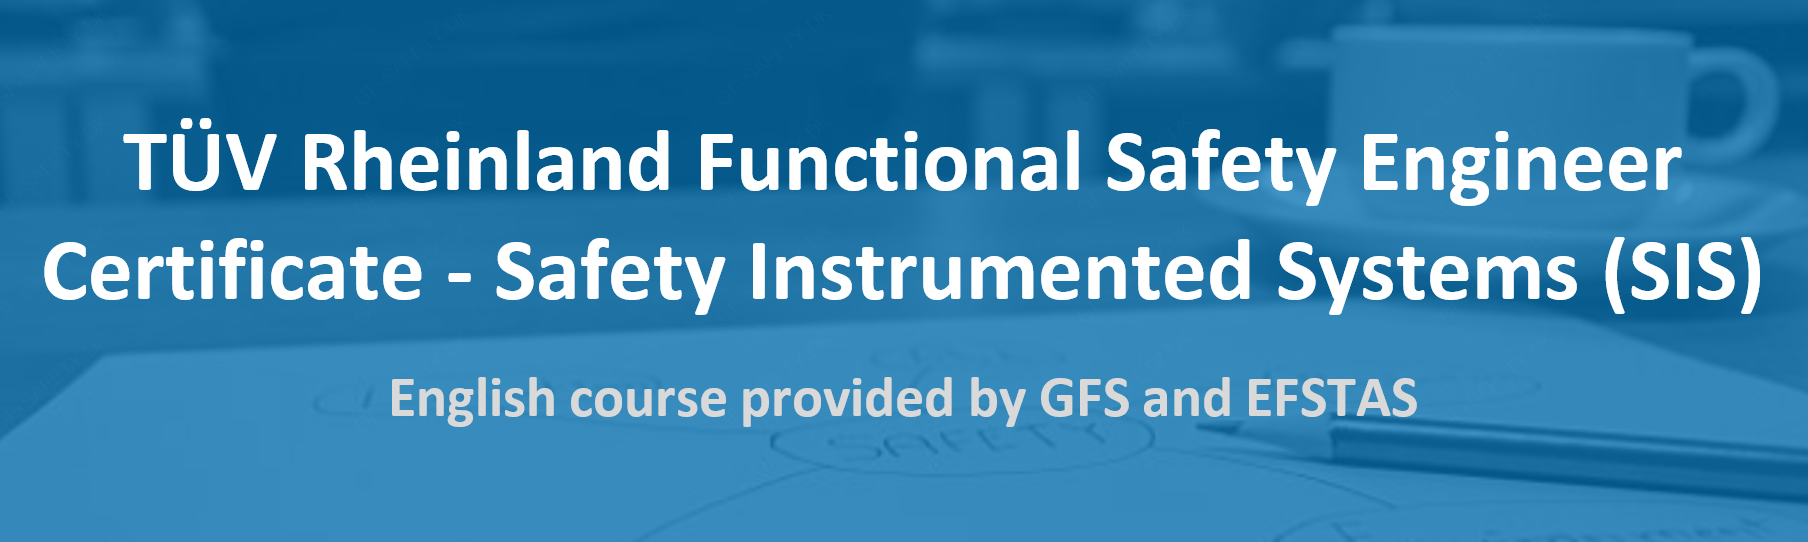 TUV Rheinland Functional Safety Engineer Certificate - Safety Instrumented Systems (SIS)